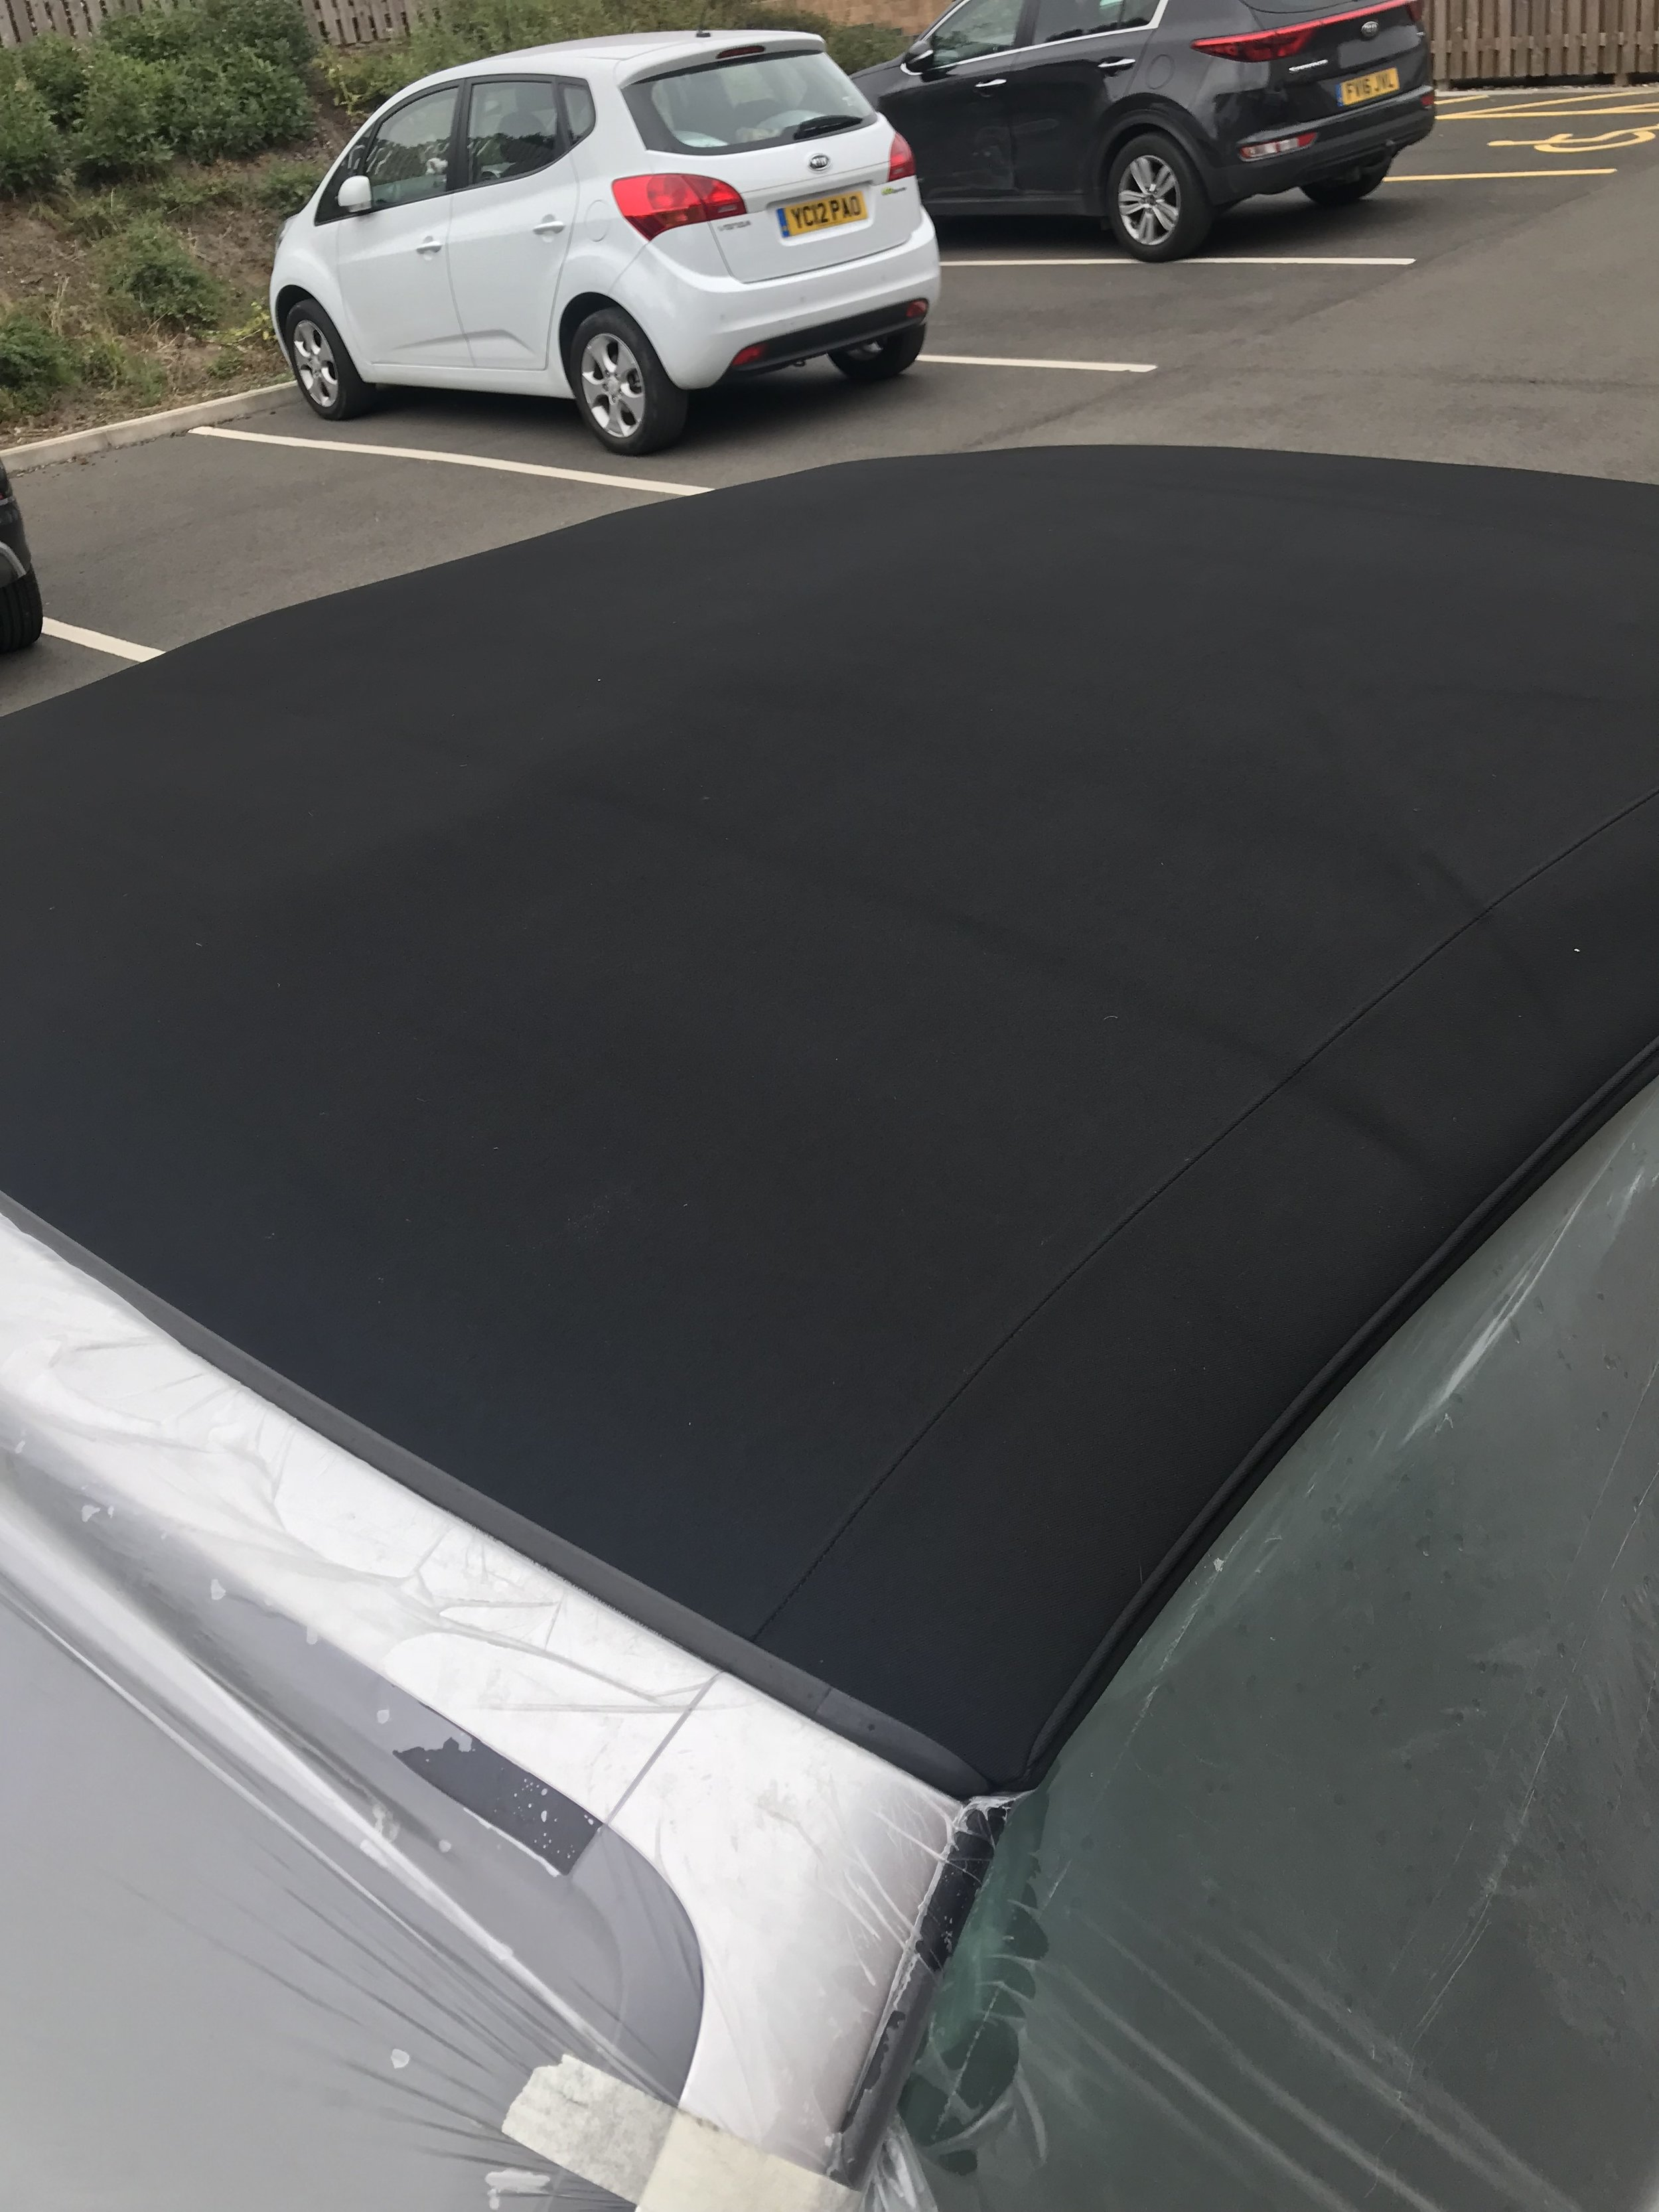 Cabriolet roof after